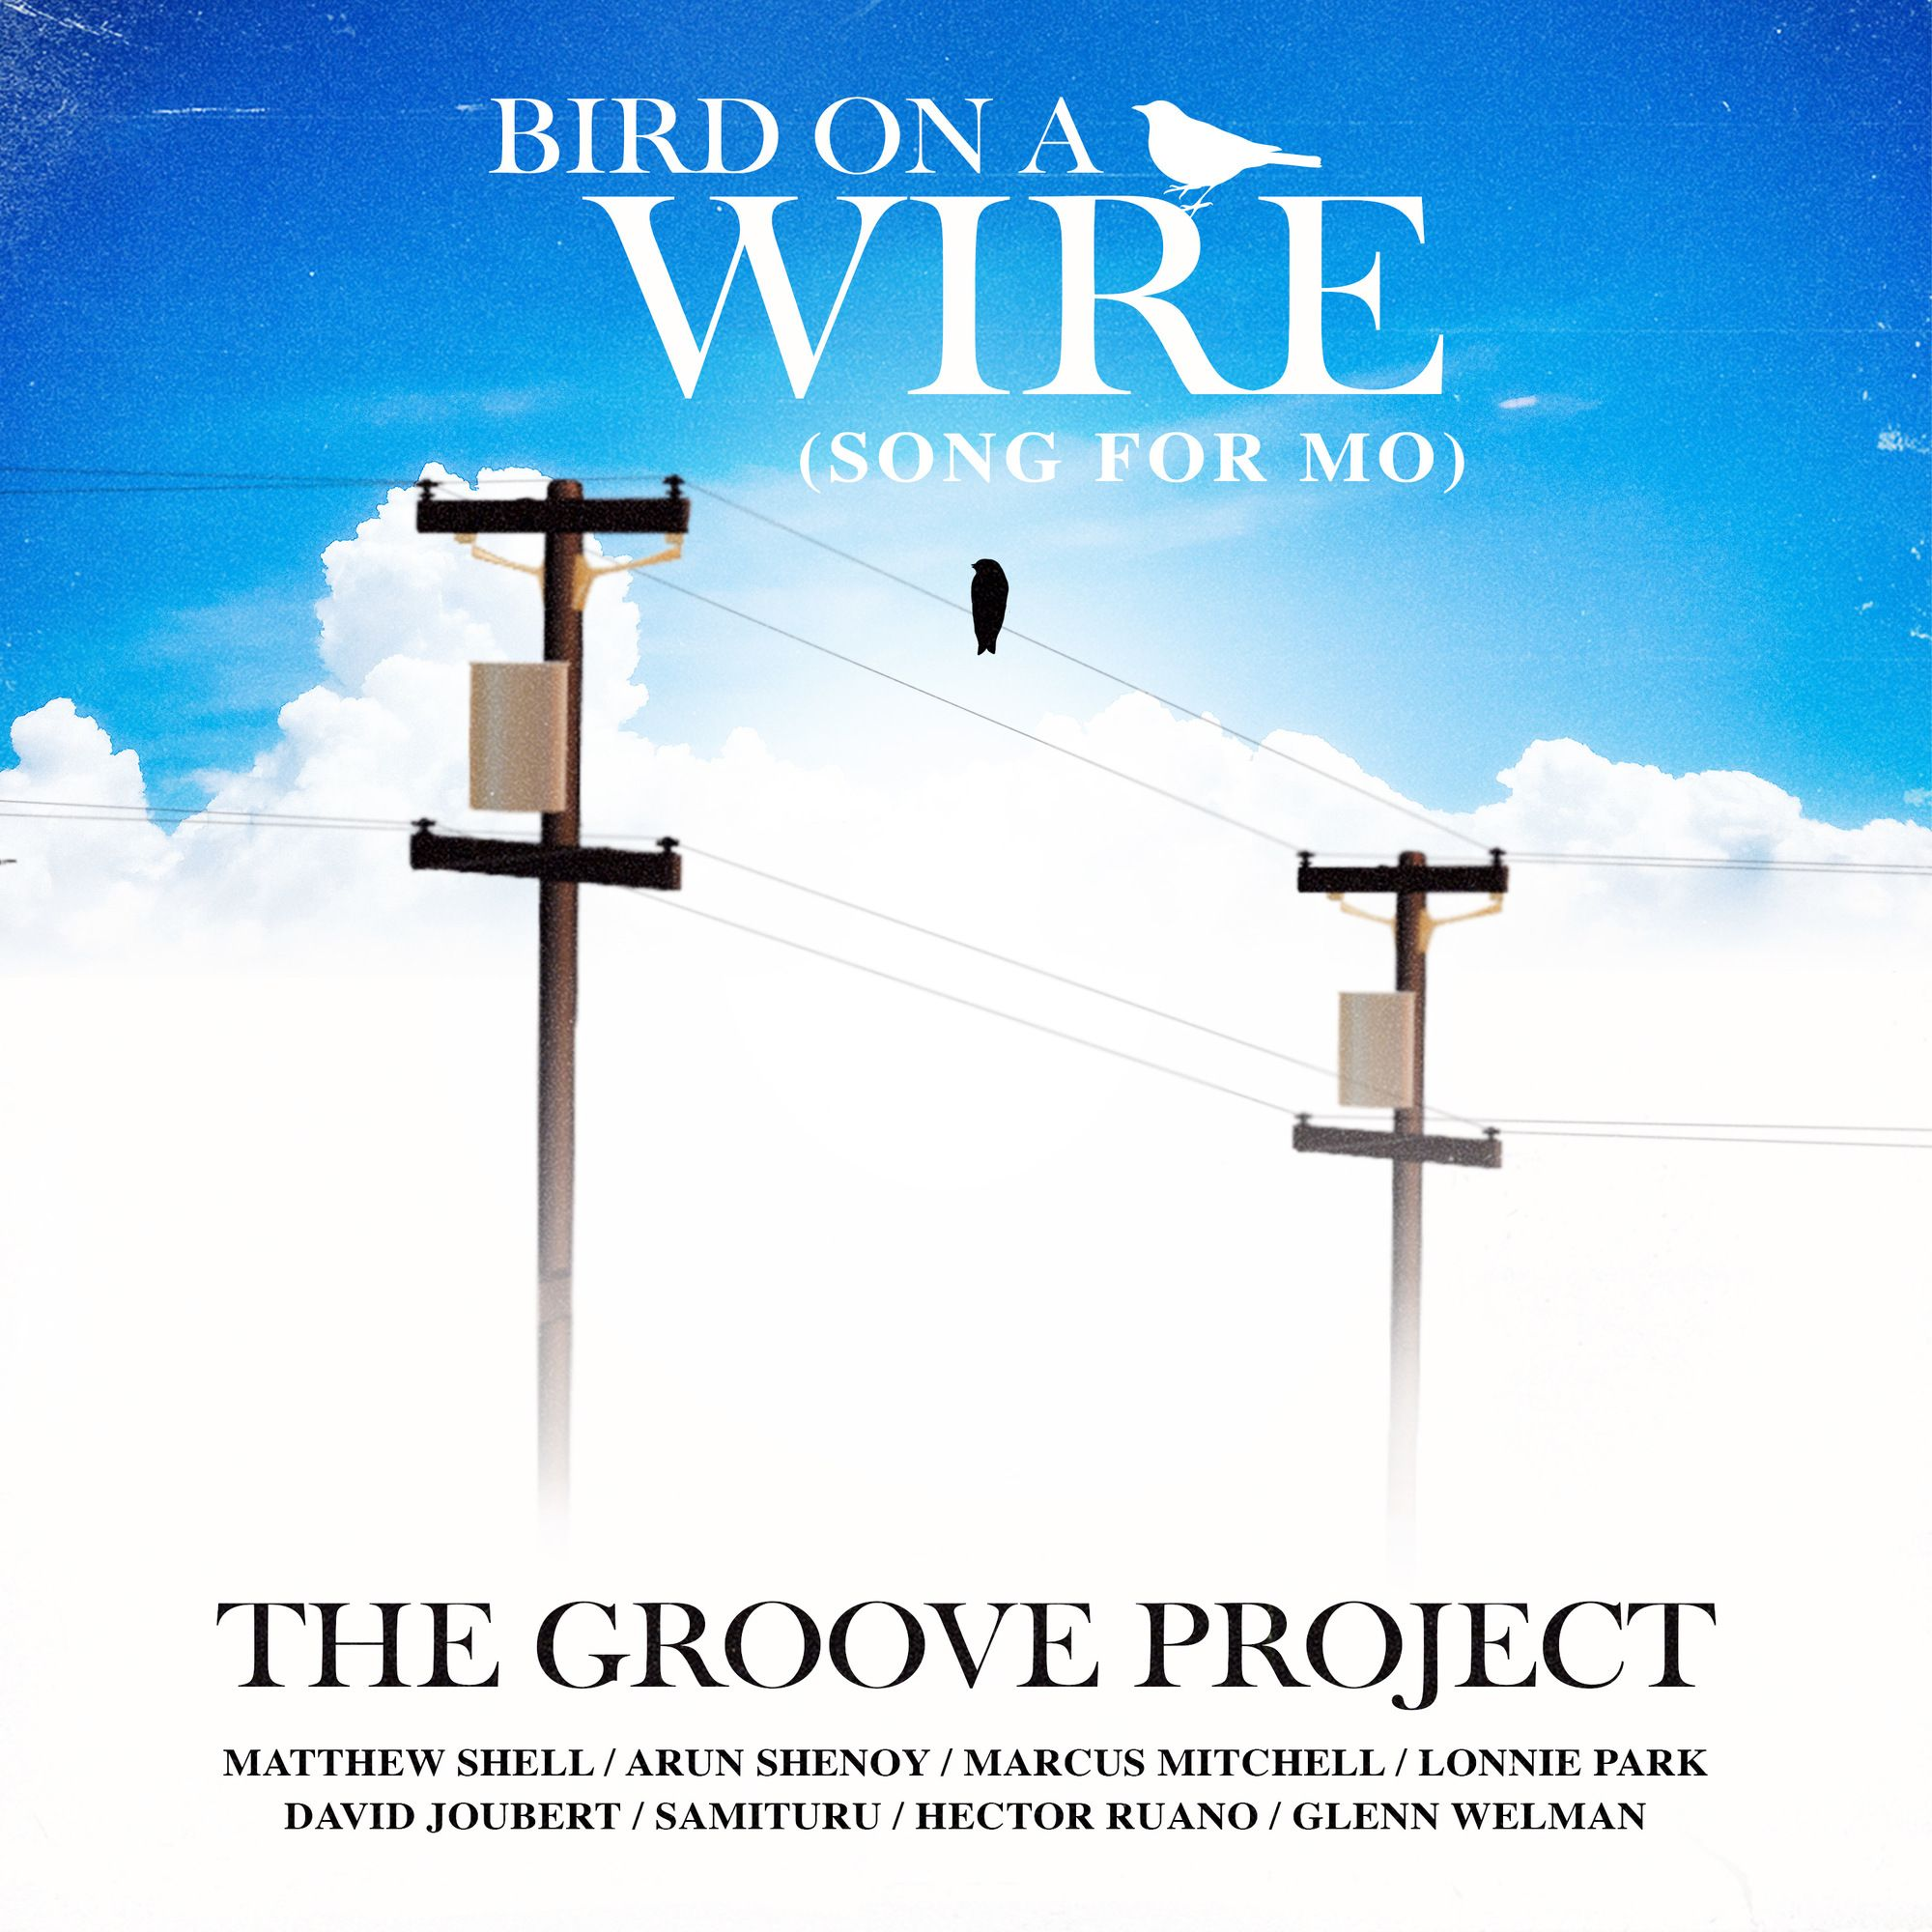 11. Bird on a Wire (Song for Mo)